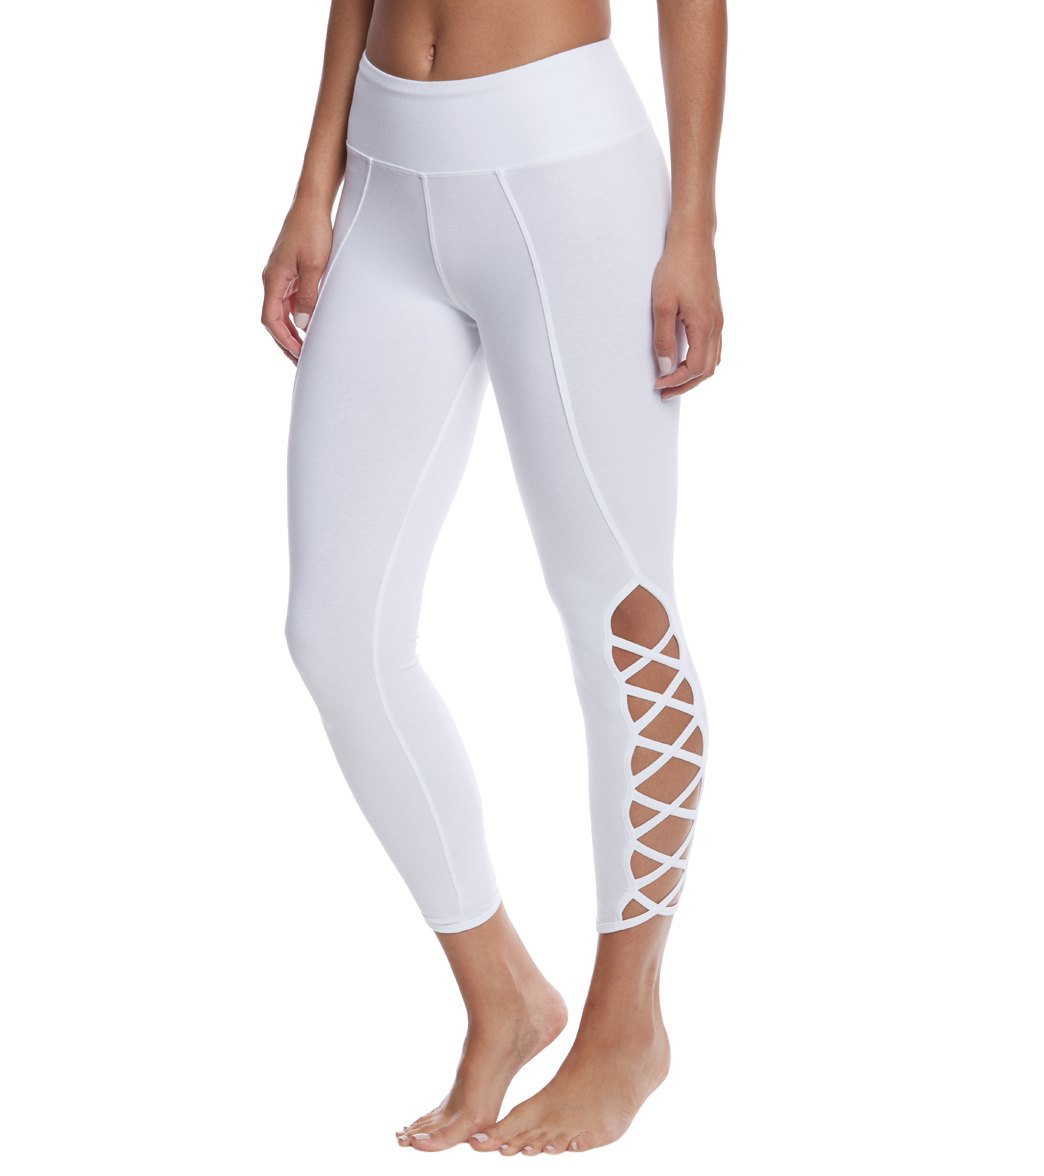 Hard Tail X Side Ankle Cotton Yoga Leggings - White